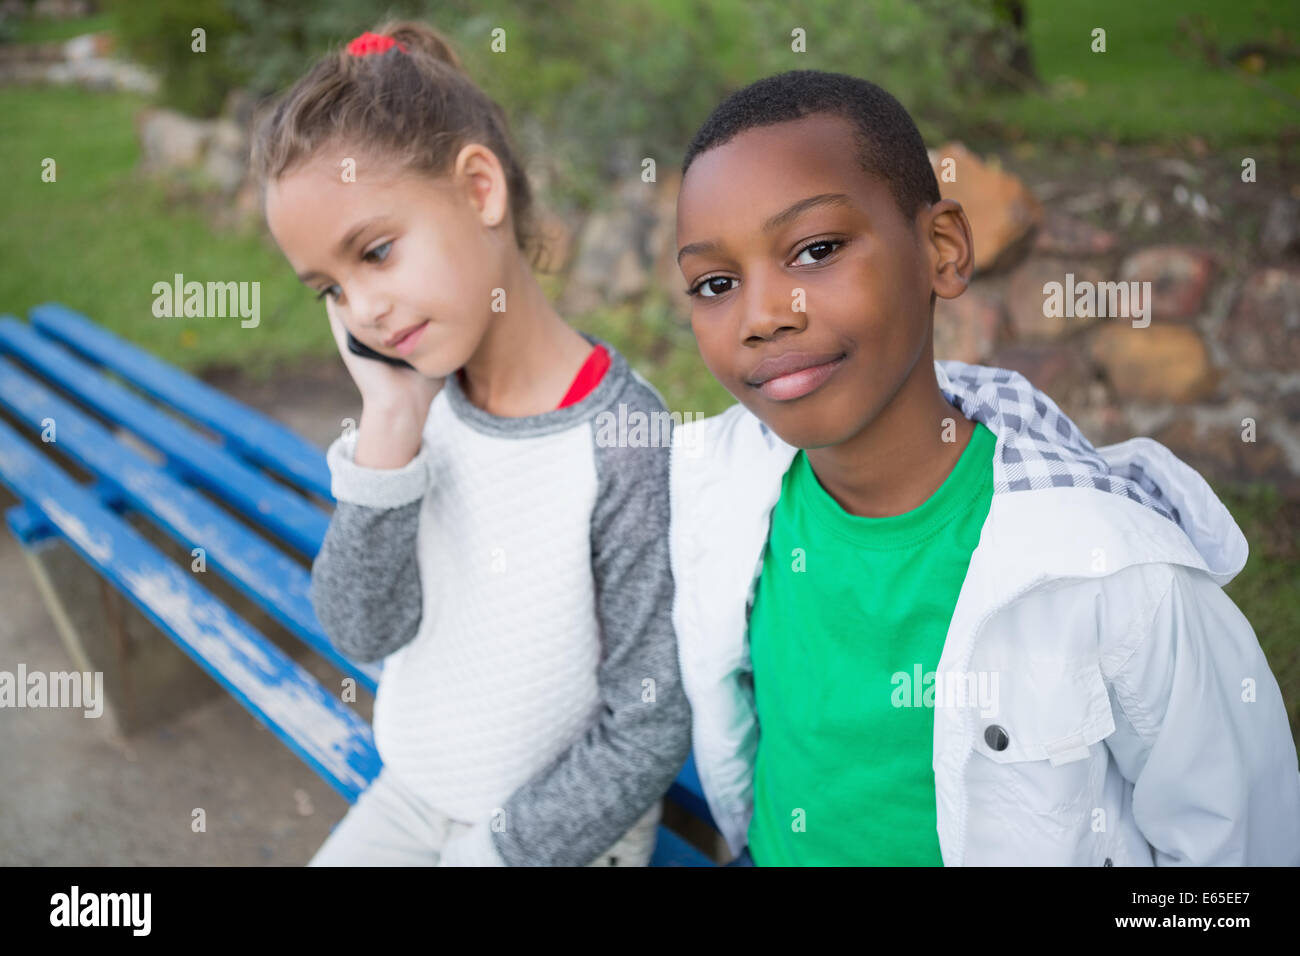 Cute little boy smiling at camera while friend talks on phone - Stock Image